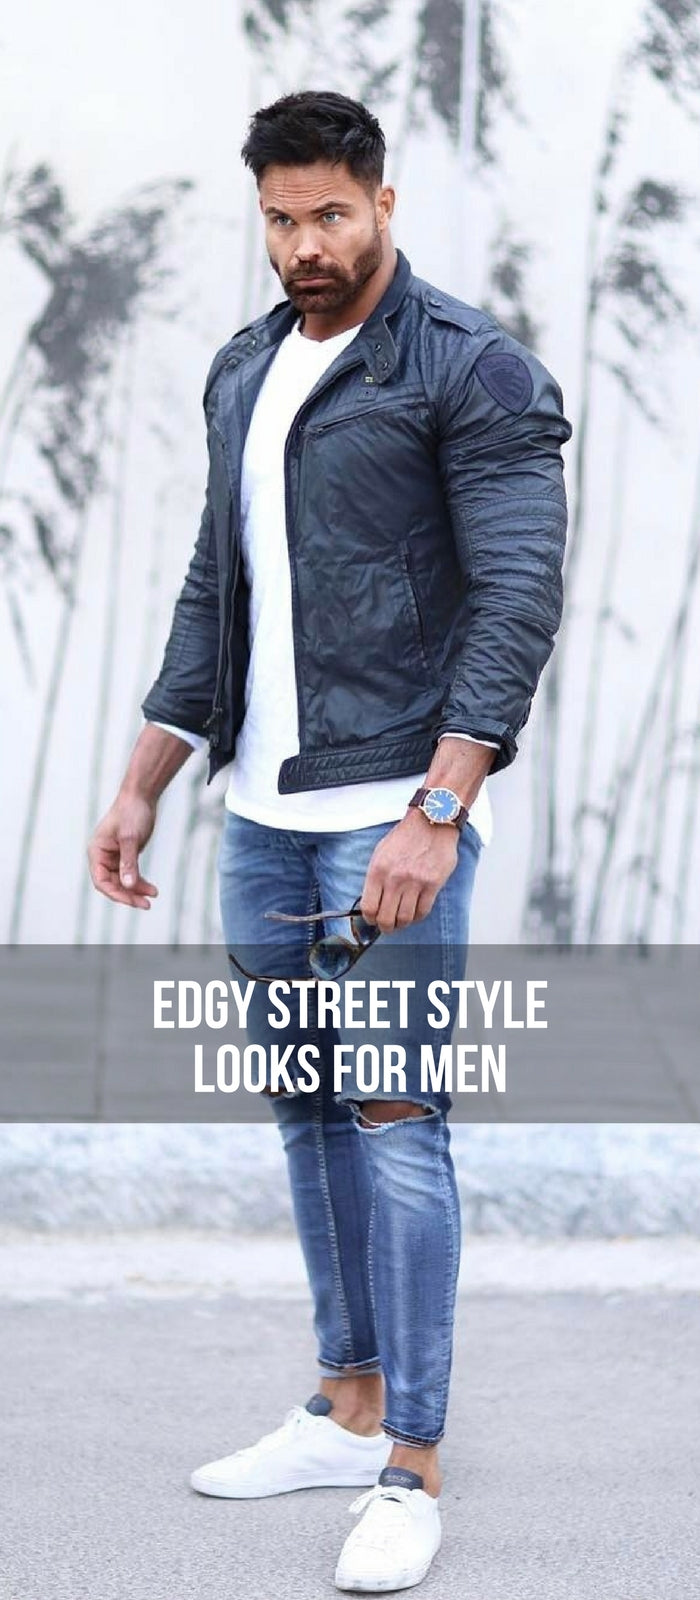 Edgy street style looks for men